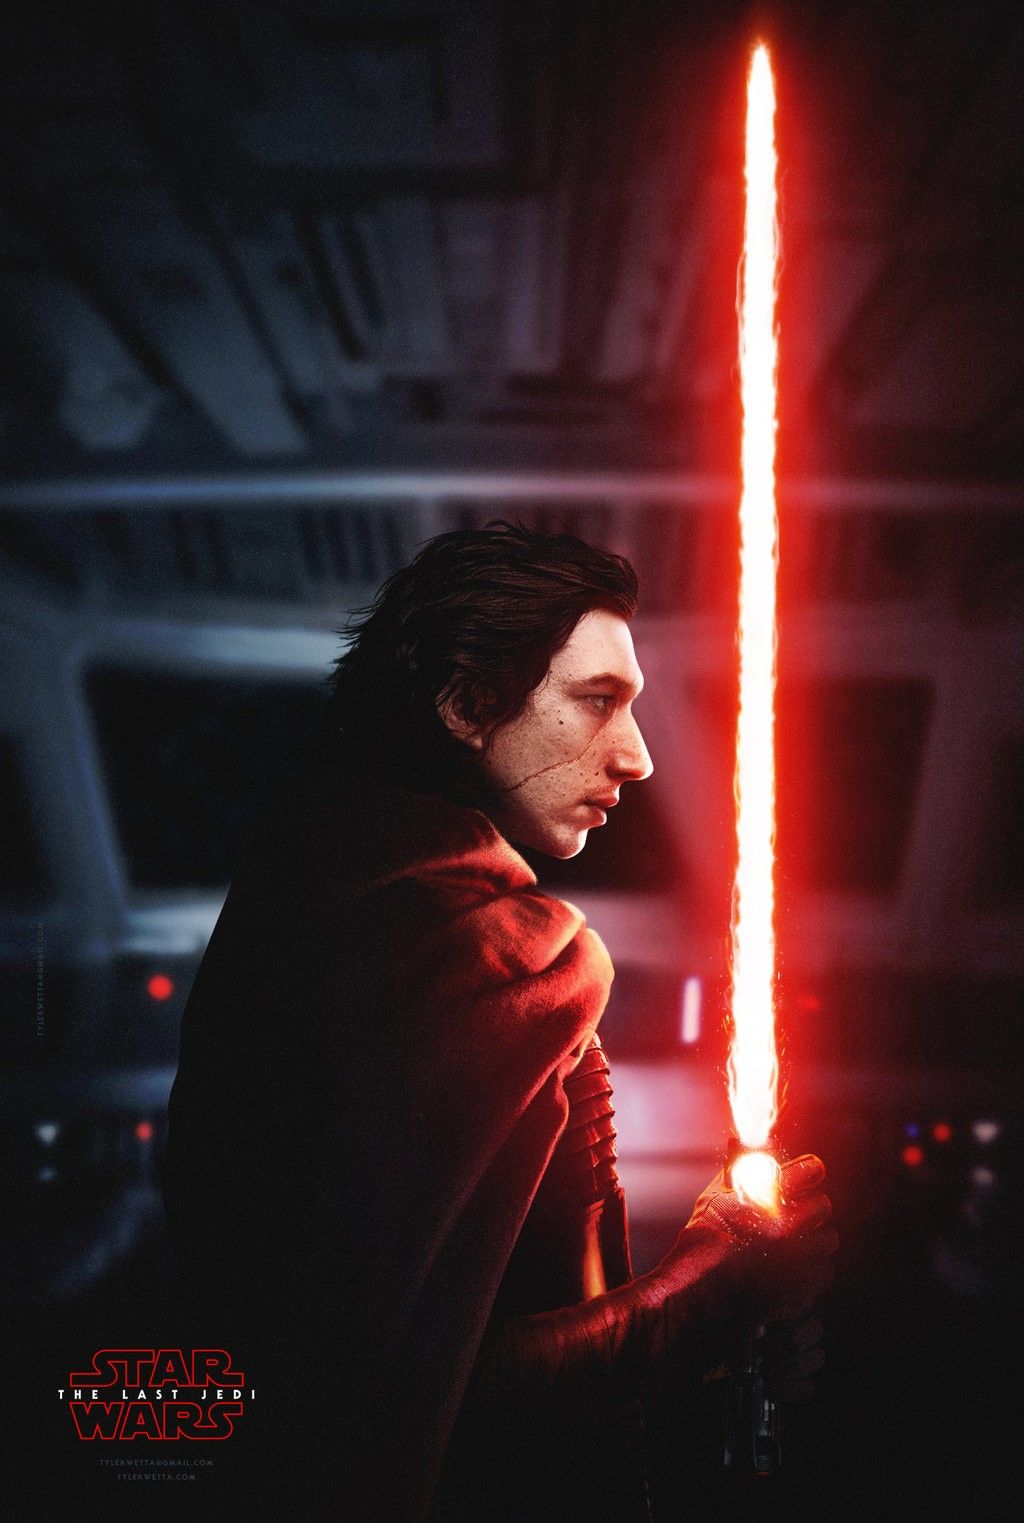 Kylo Ren Fan Poster Star Wars Episode Viii The Last Jedi Sci Fi Movie Ren Star Wars Star Wars Poster Star Wars Universe